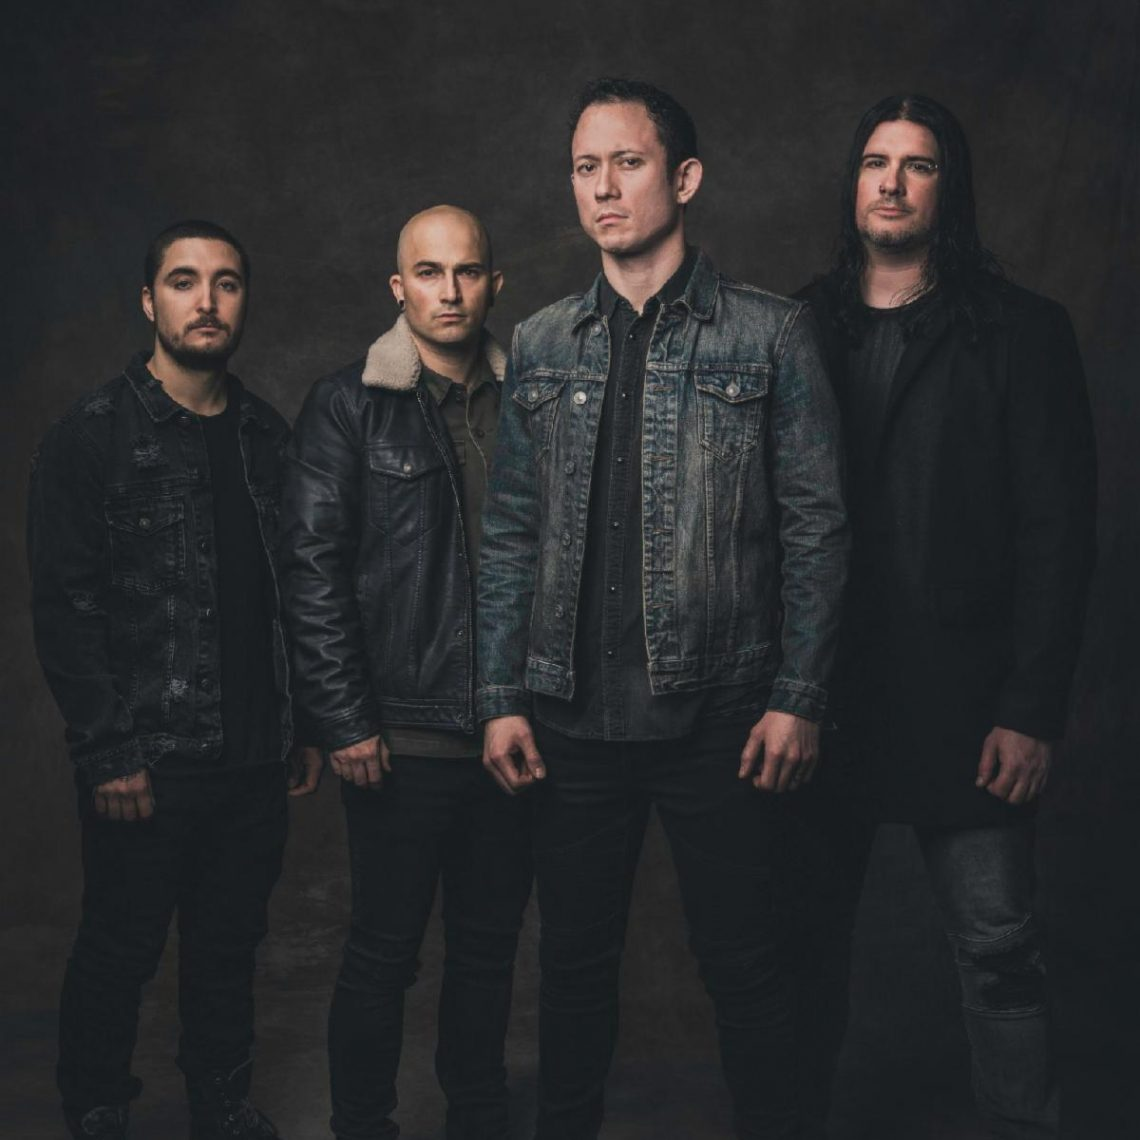 TRIVIUM share song & video for title track What The Dead Men Say